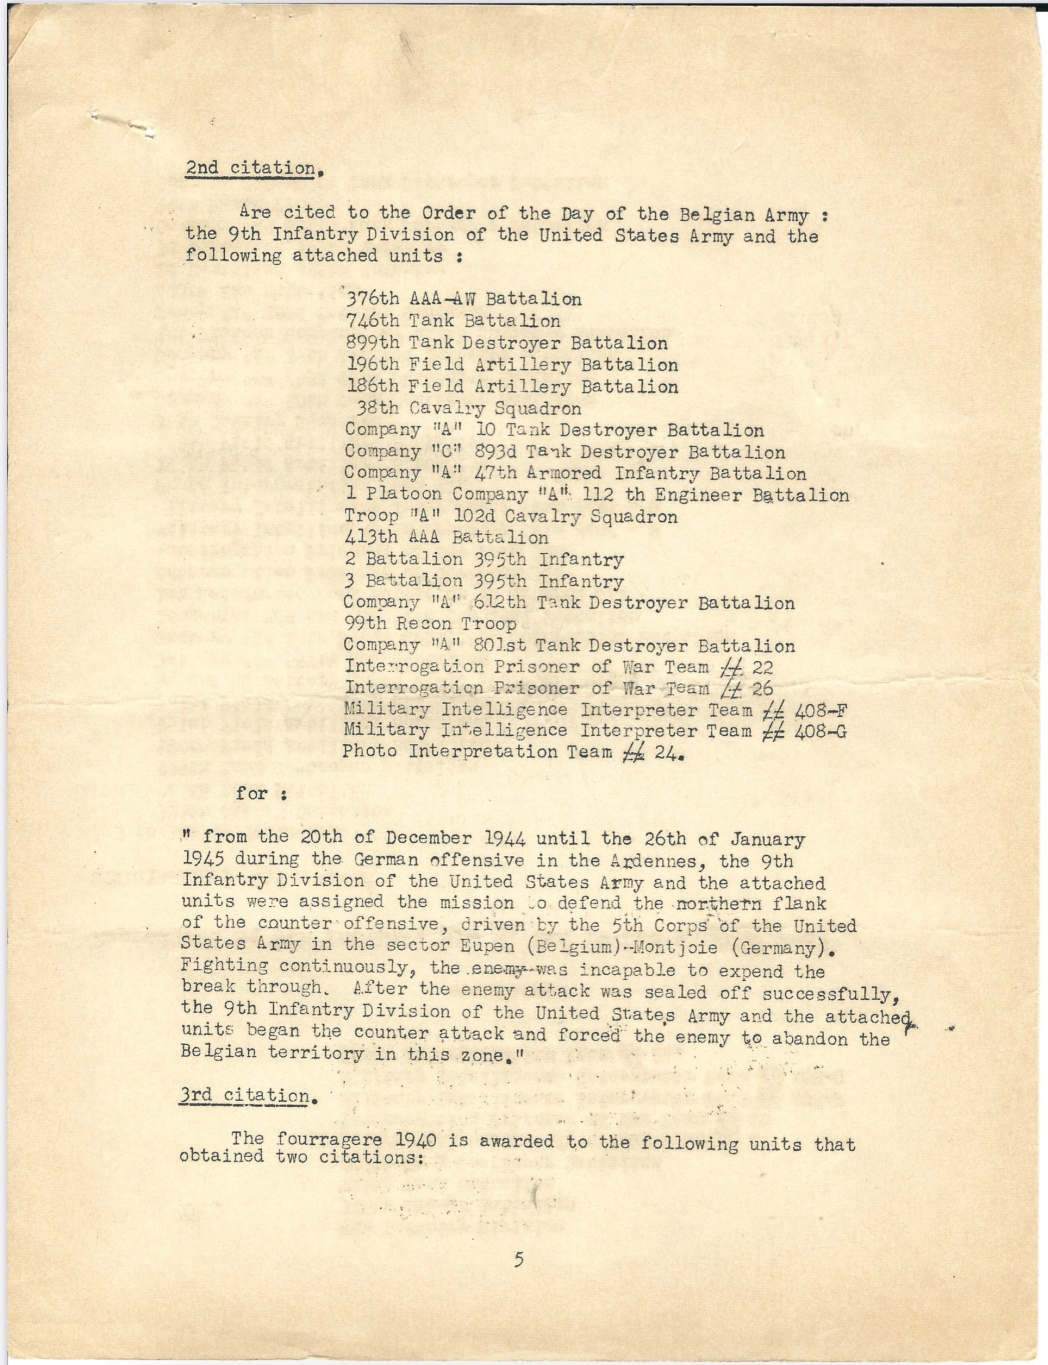 Belgian Fourragère WWII document handed out to Lt. Colonel Robert H. Stumpf,